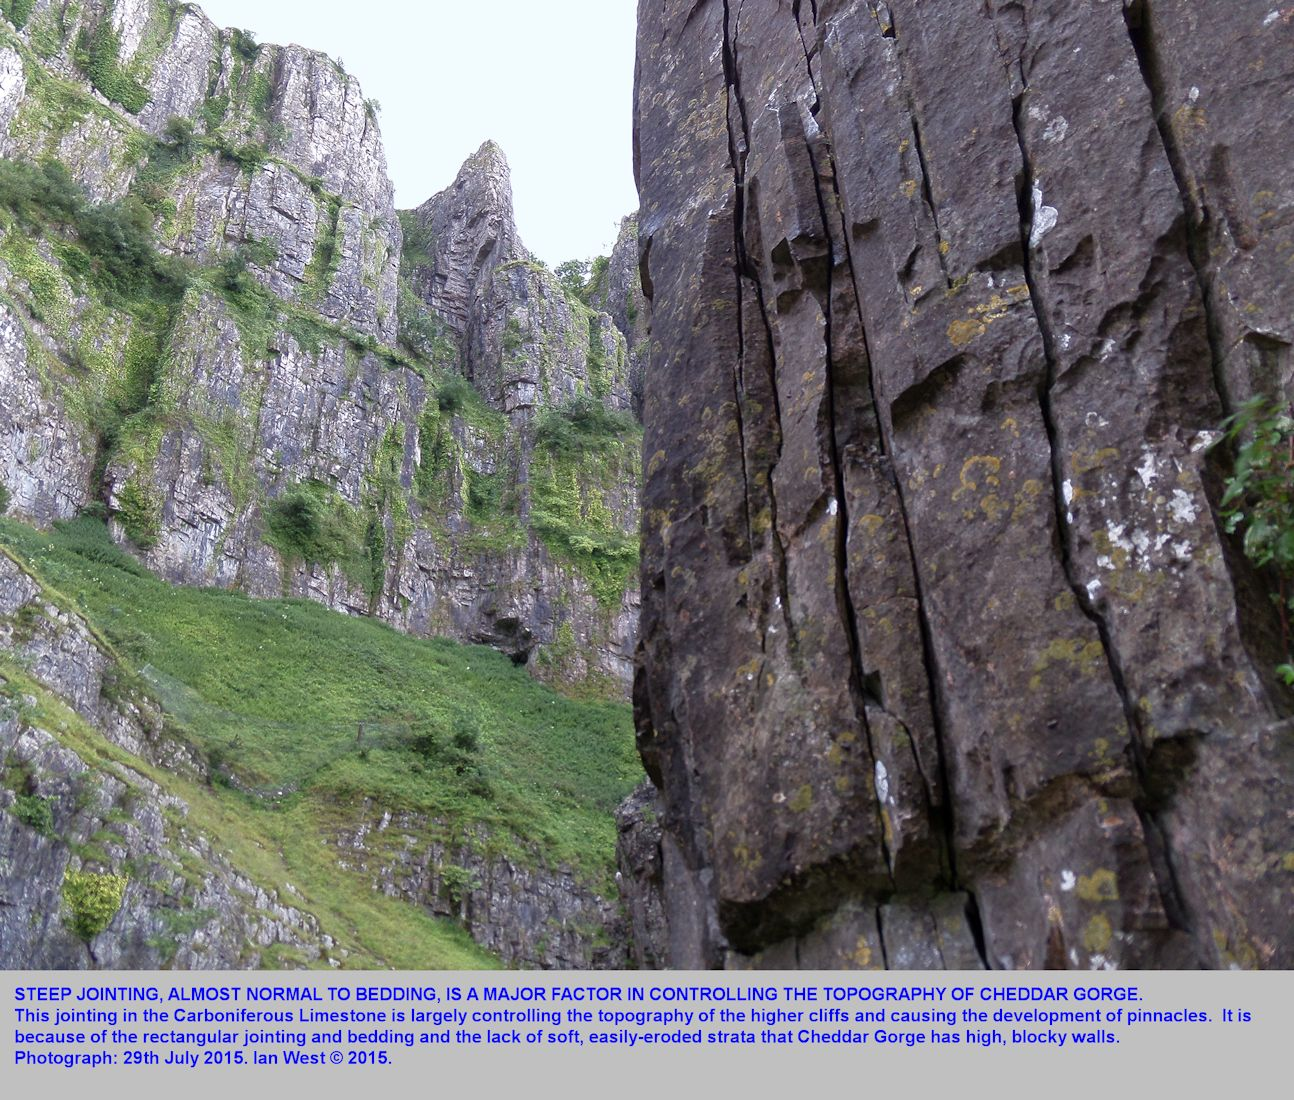 Rectilinear jointing and bedding are structures controlling the topography of the cliffs of Cheddar Gorge, Mendip Hills, Somerset, 29th July 2015